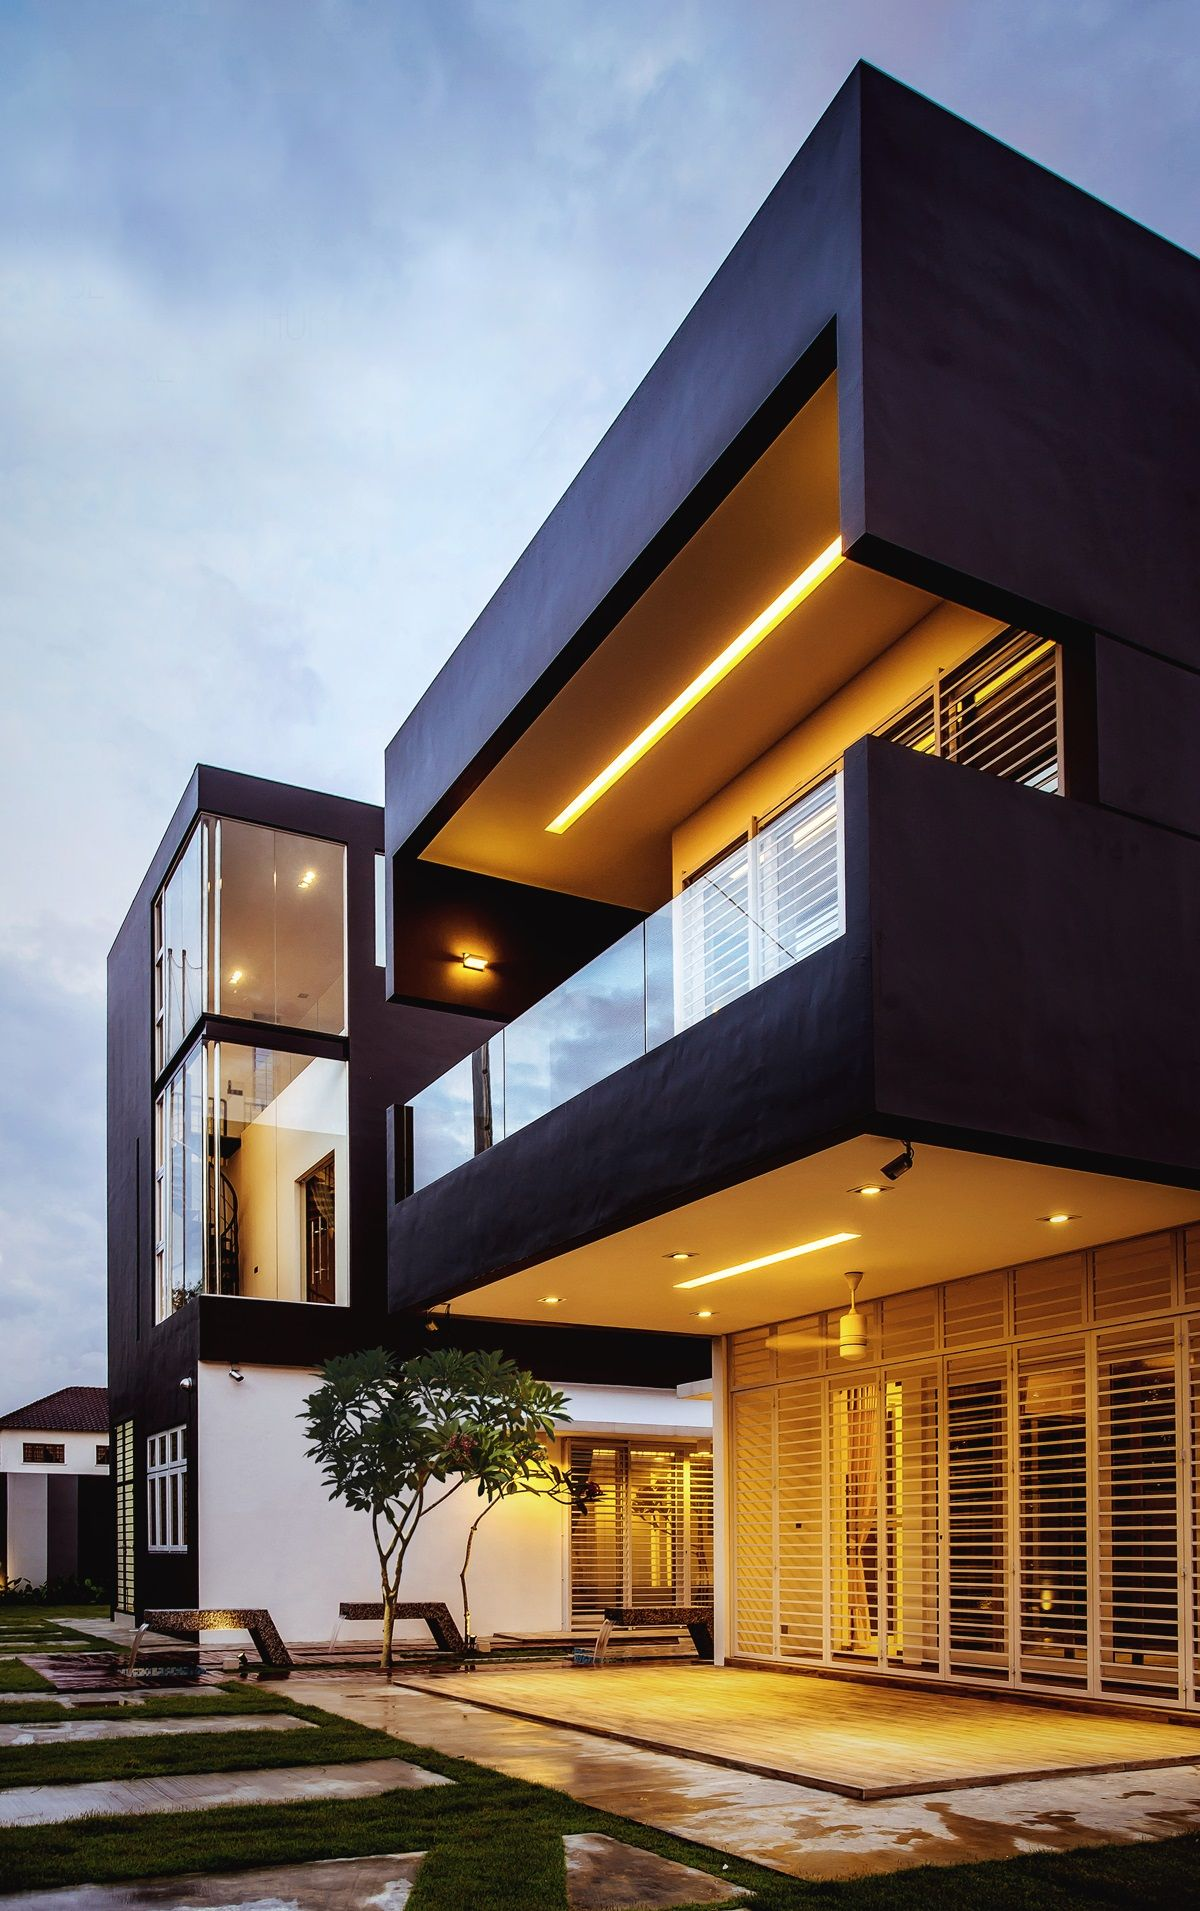 Home Design Business Ideas: Interesting House Exterior Design In Kulai, Malaysia